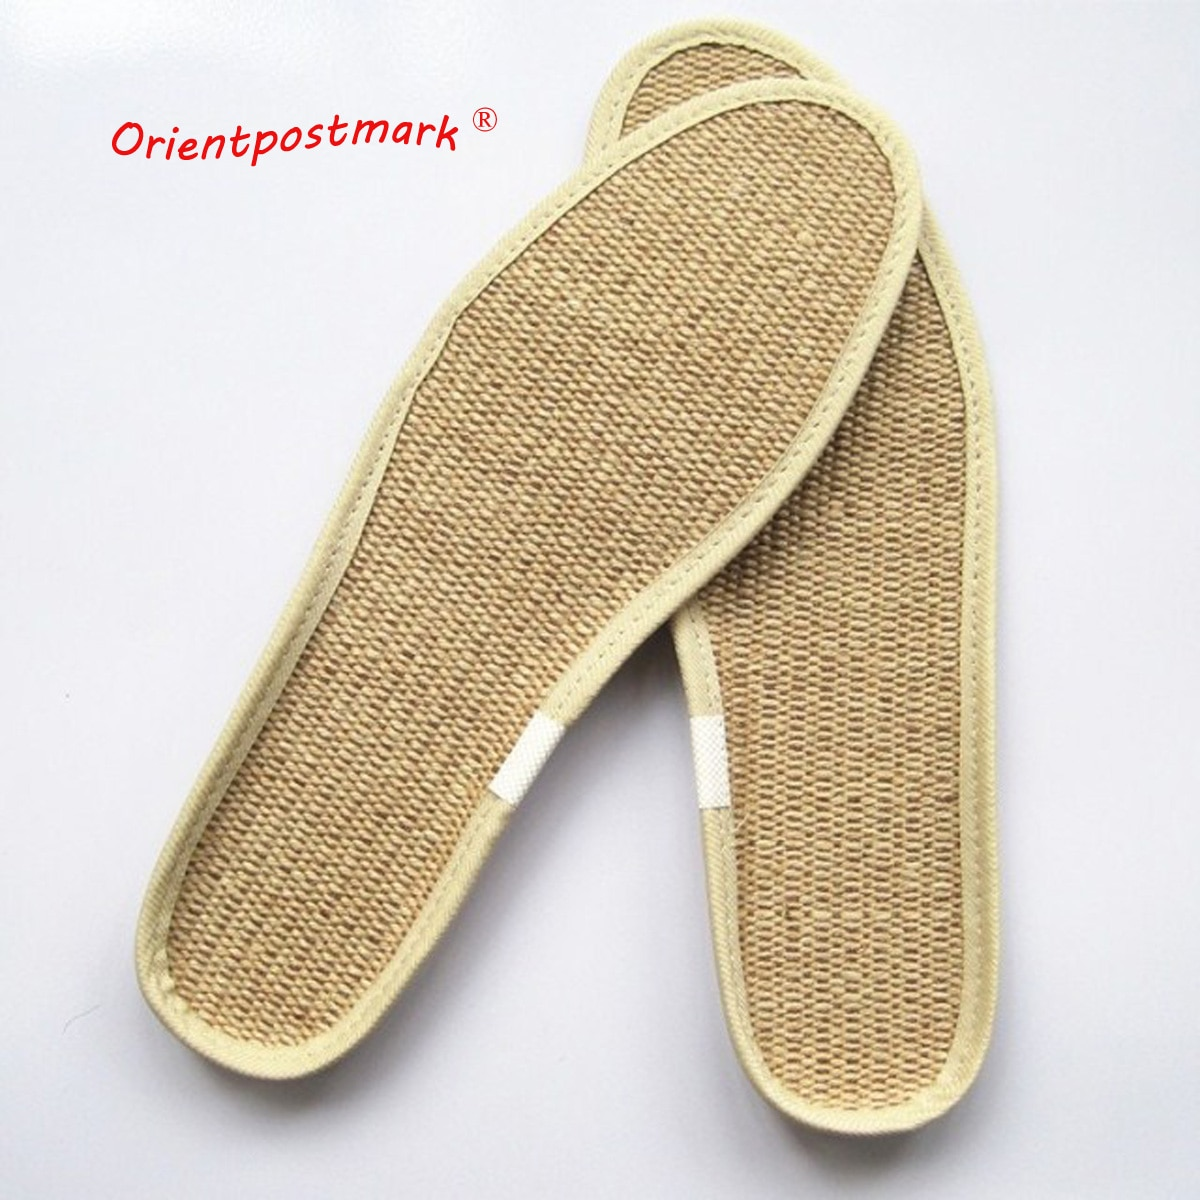 sweat absorbent breathable solid insoles unisex non woven fabric white insoles comfortable soft disposable sanitary insoles Jute EVA Insole Non-slip Linen Insole Durable Comfort Flax Absorbent  Breathable Unisex Sports Insoles Deodorant